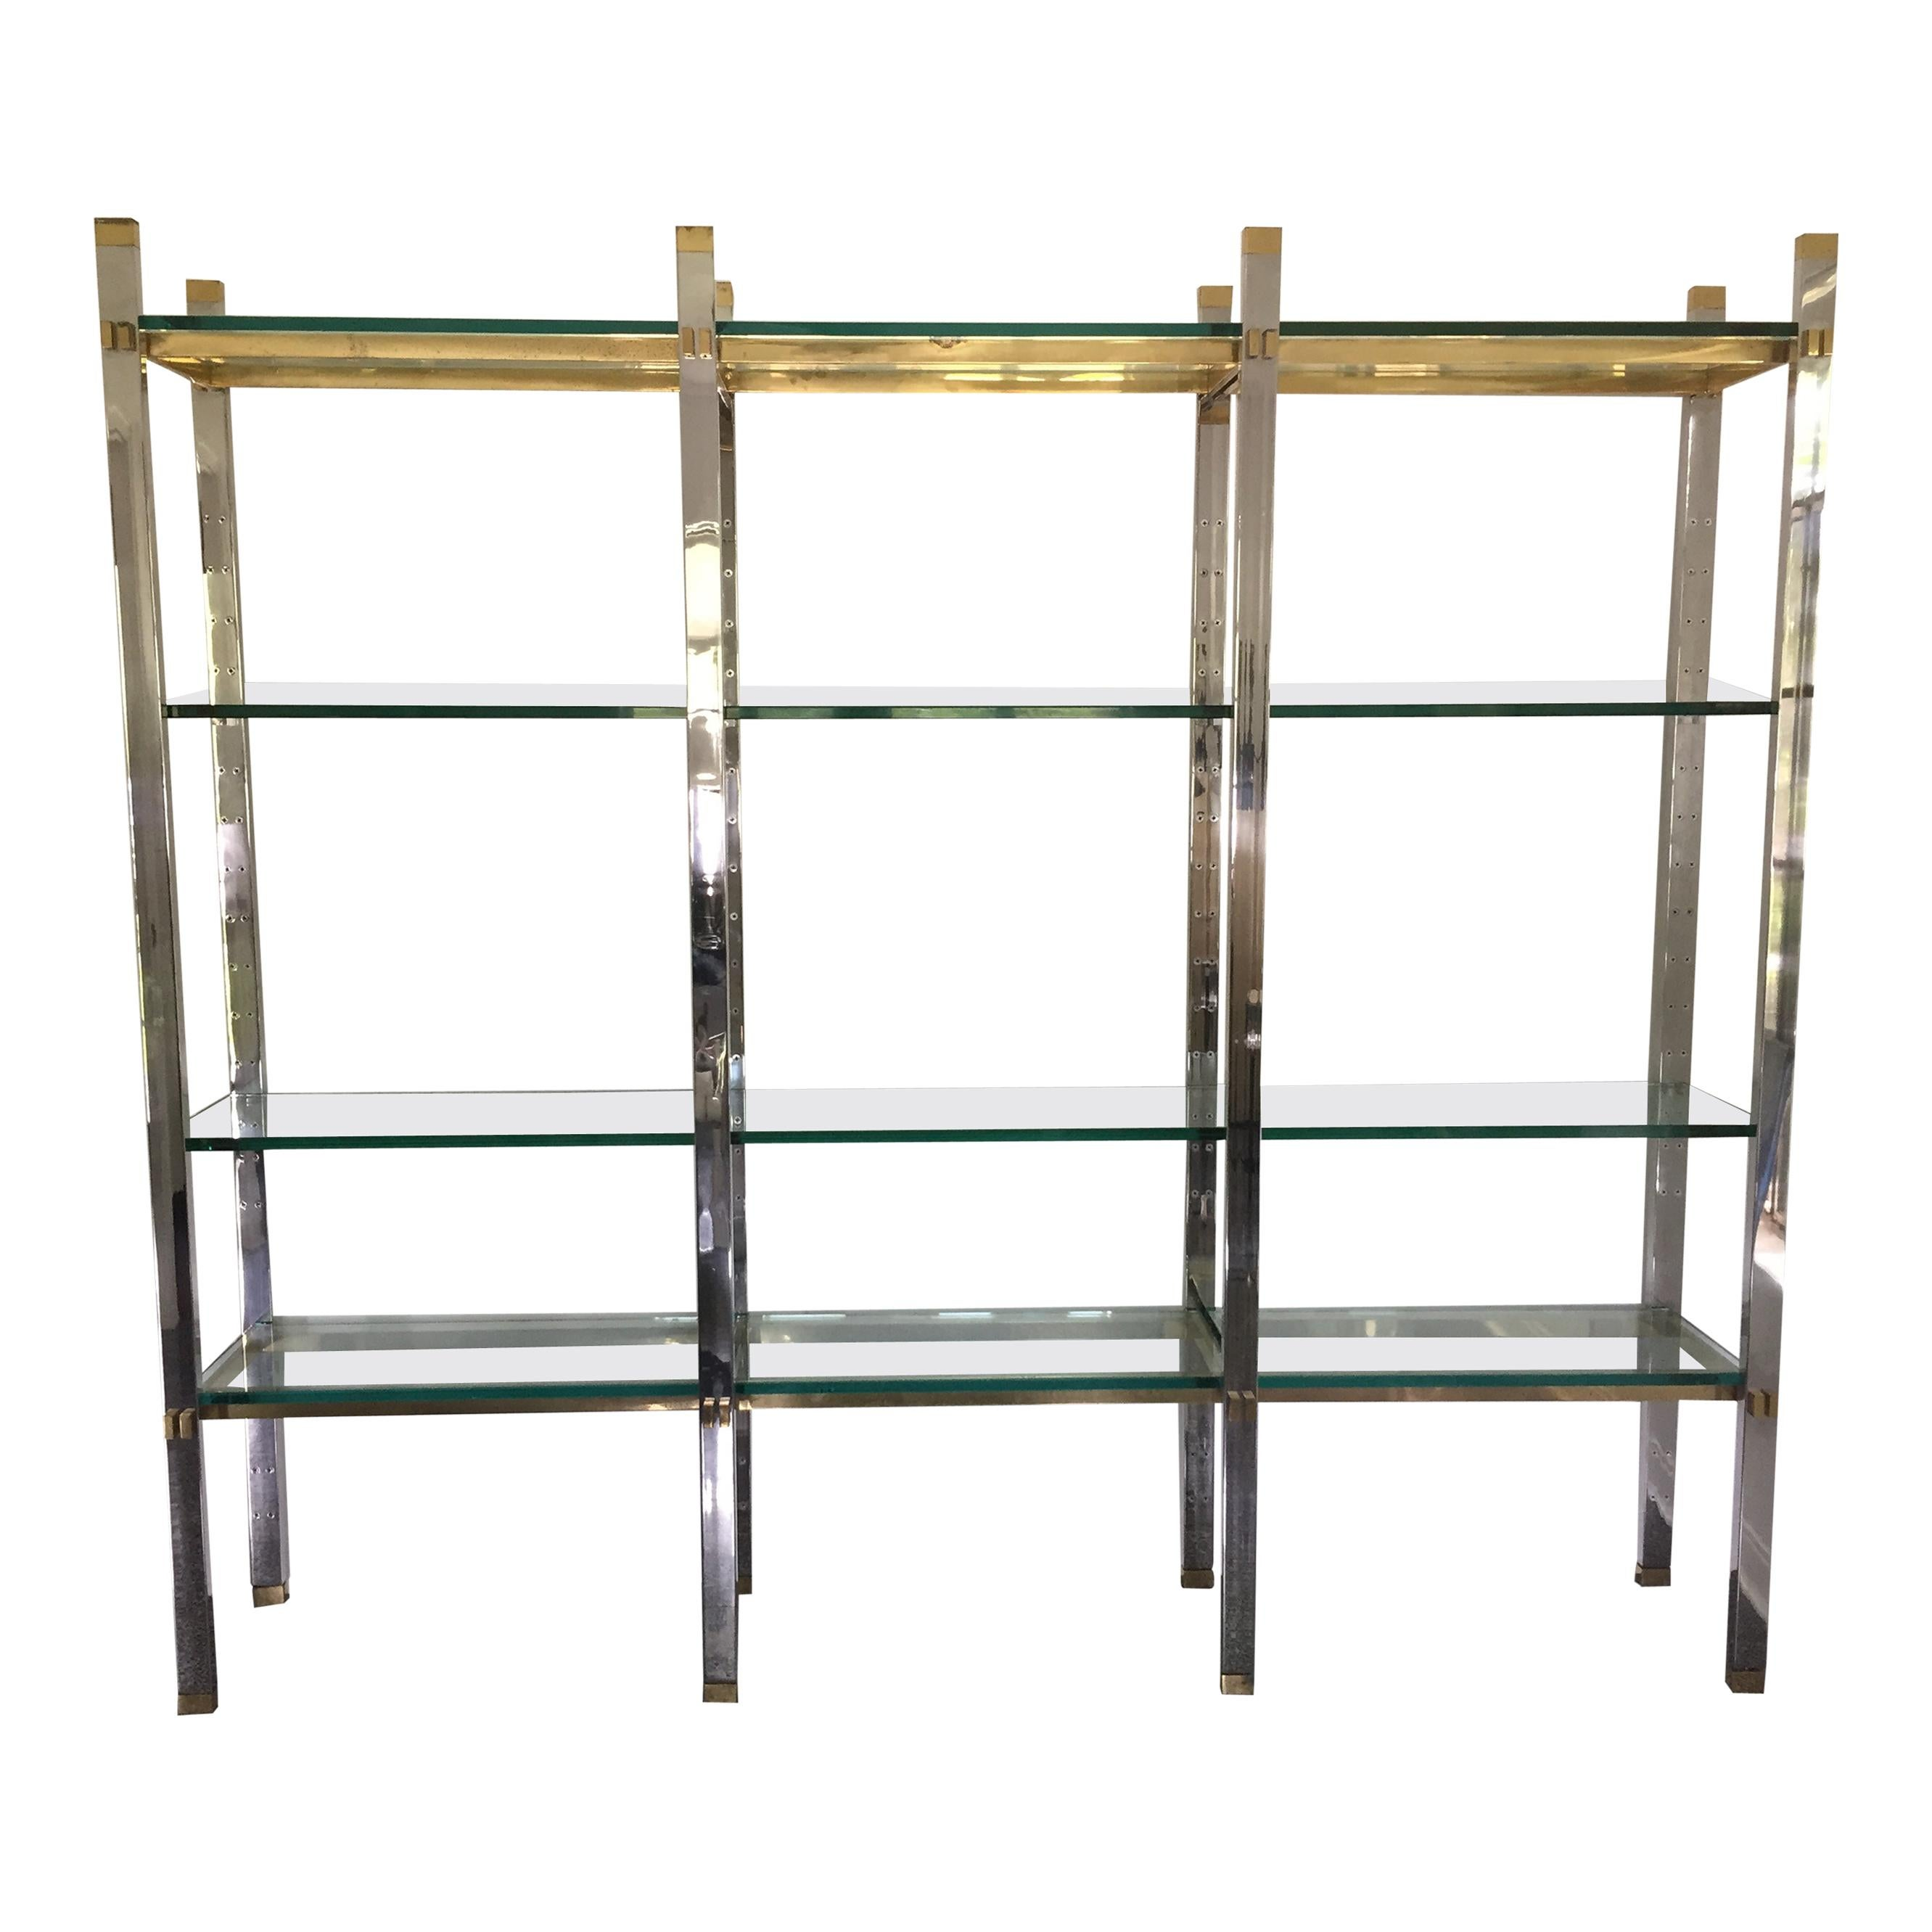 Midcentury Paul M. Jones Stainless Steel and Brass Étagère, 3 Sections